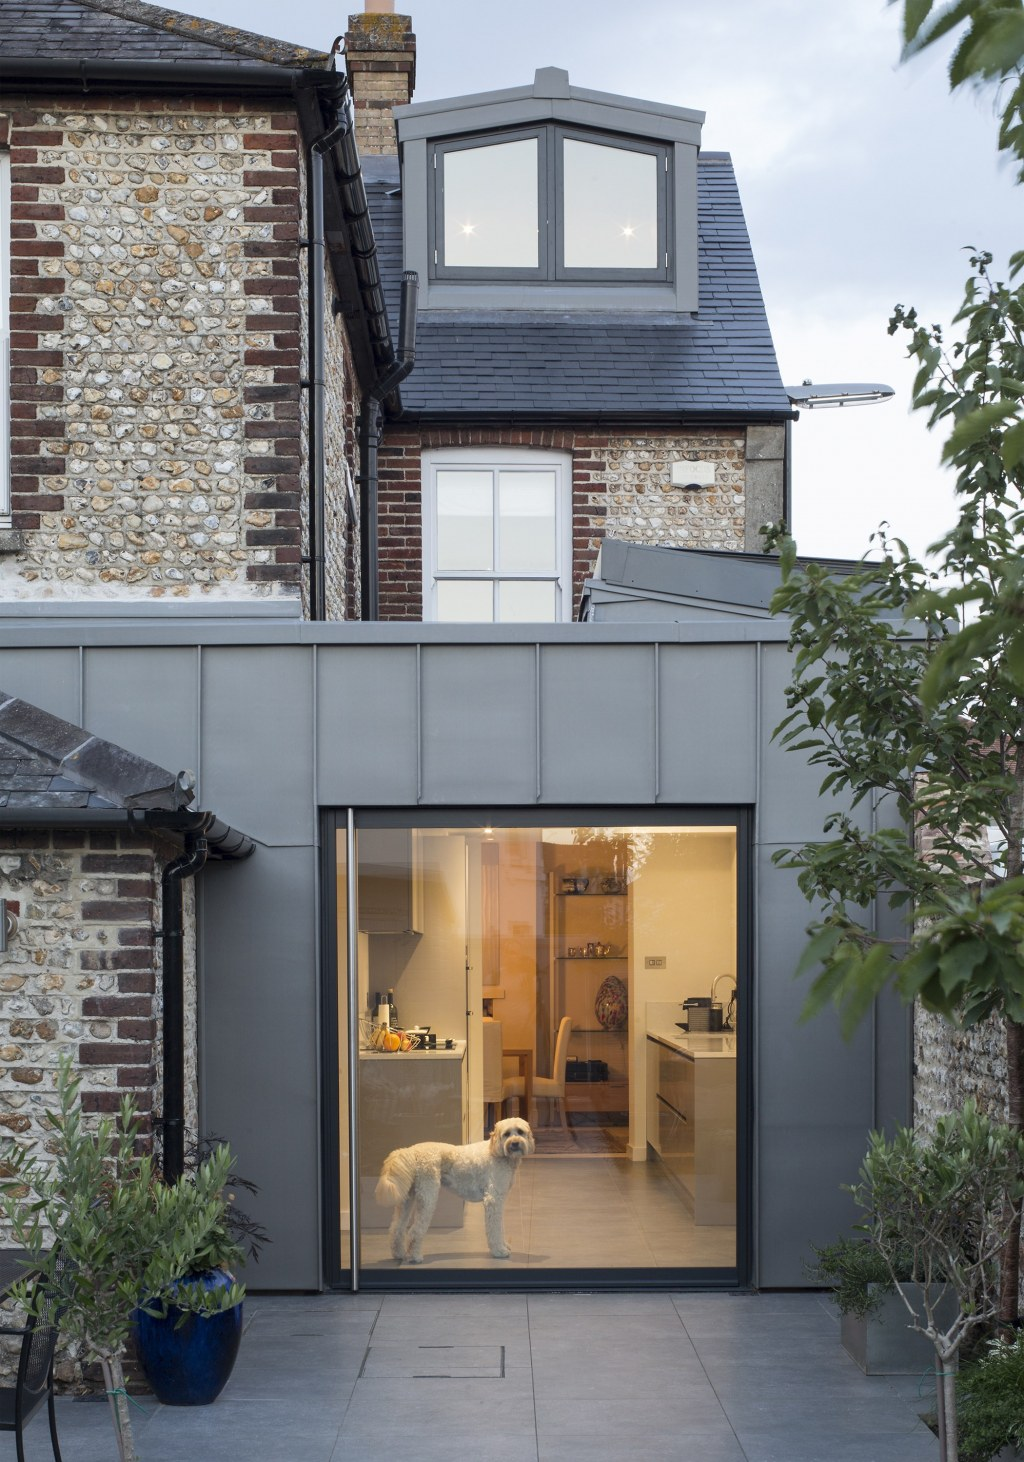 Whyke Lane / Extension to a Conservation Area, Town House 41